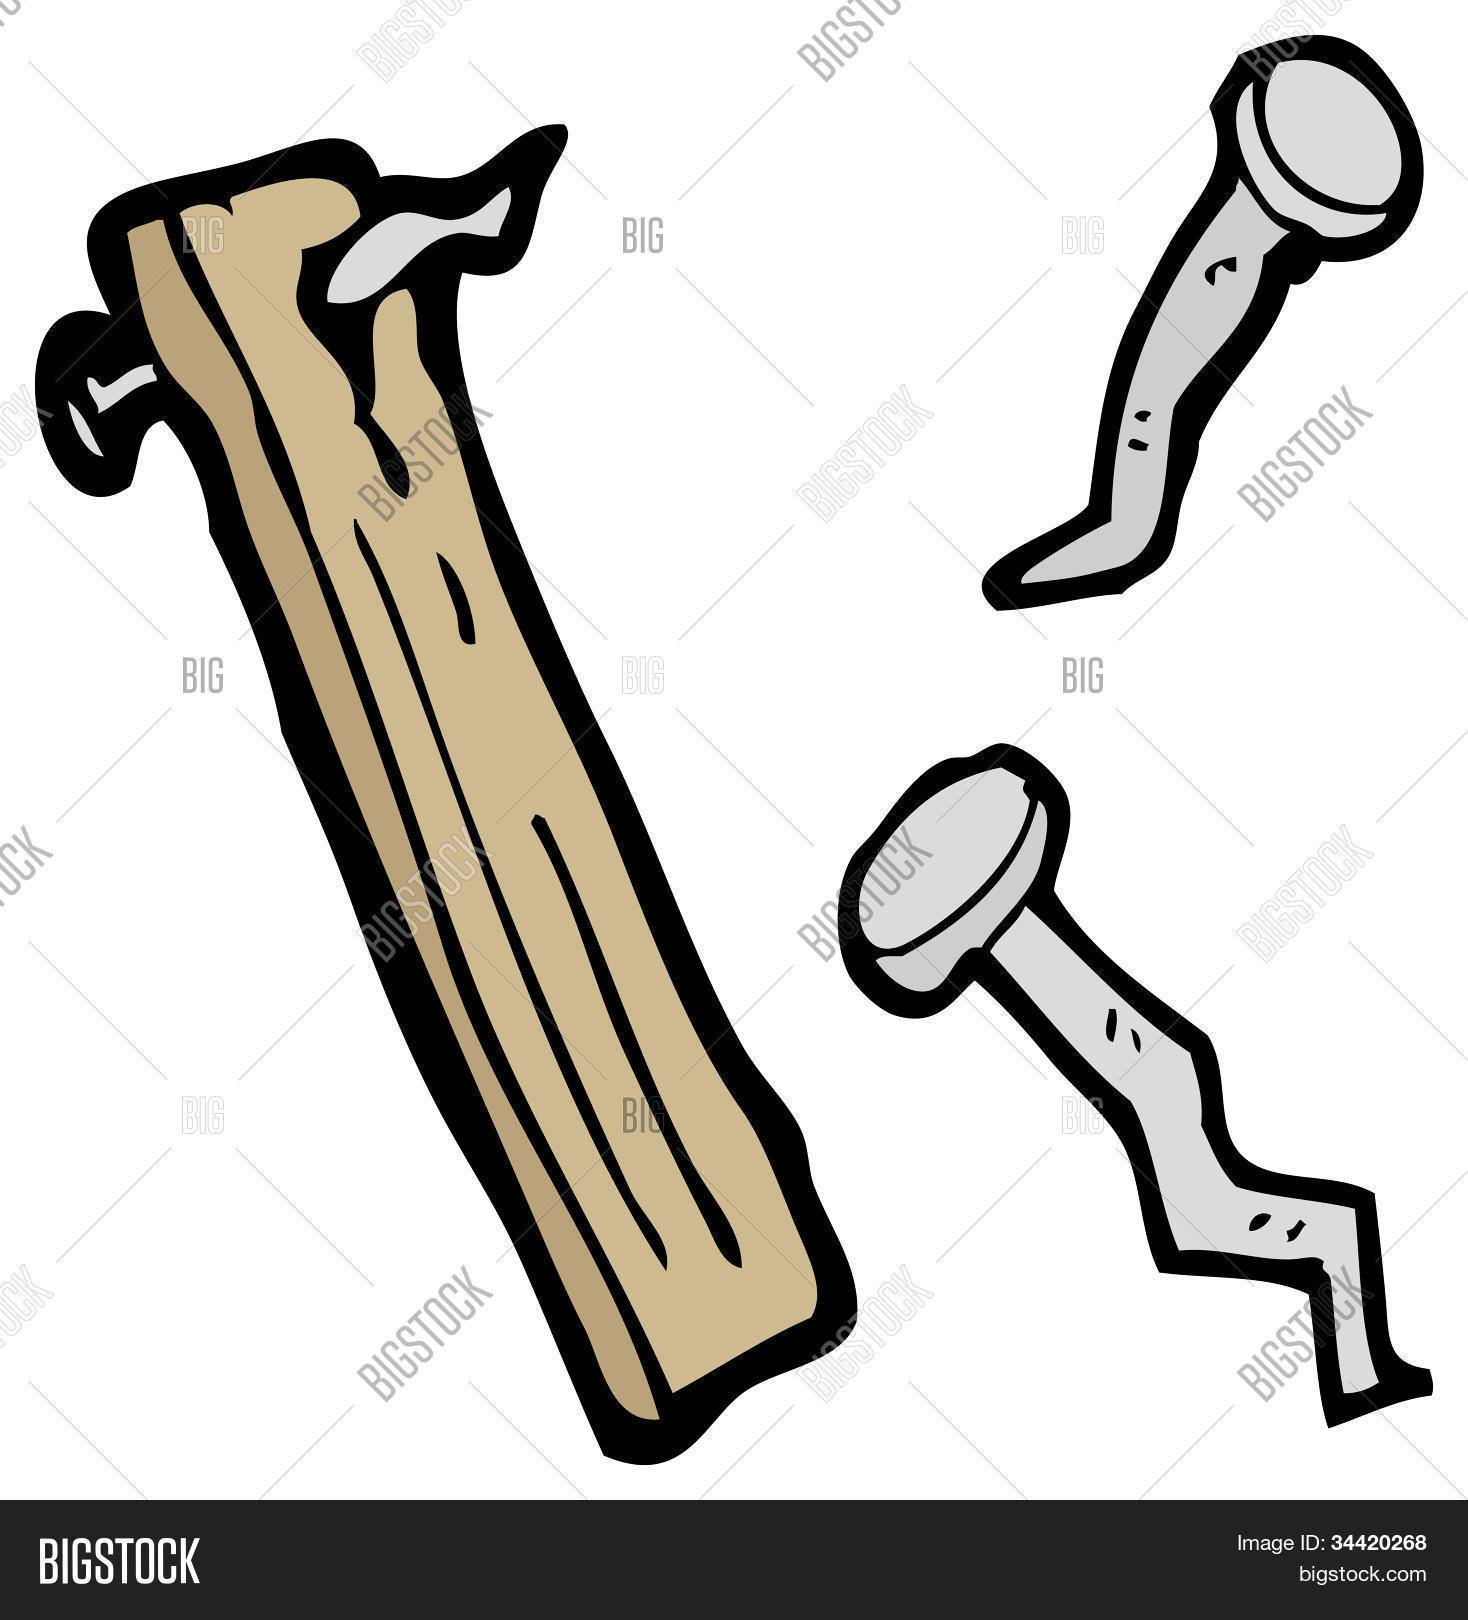 Cartoon Old Wood Plank And Nails